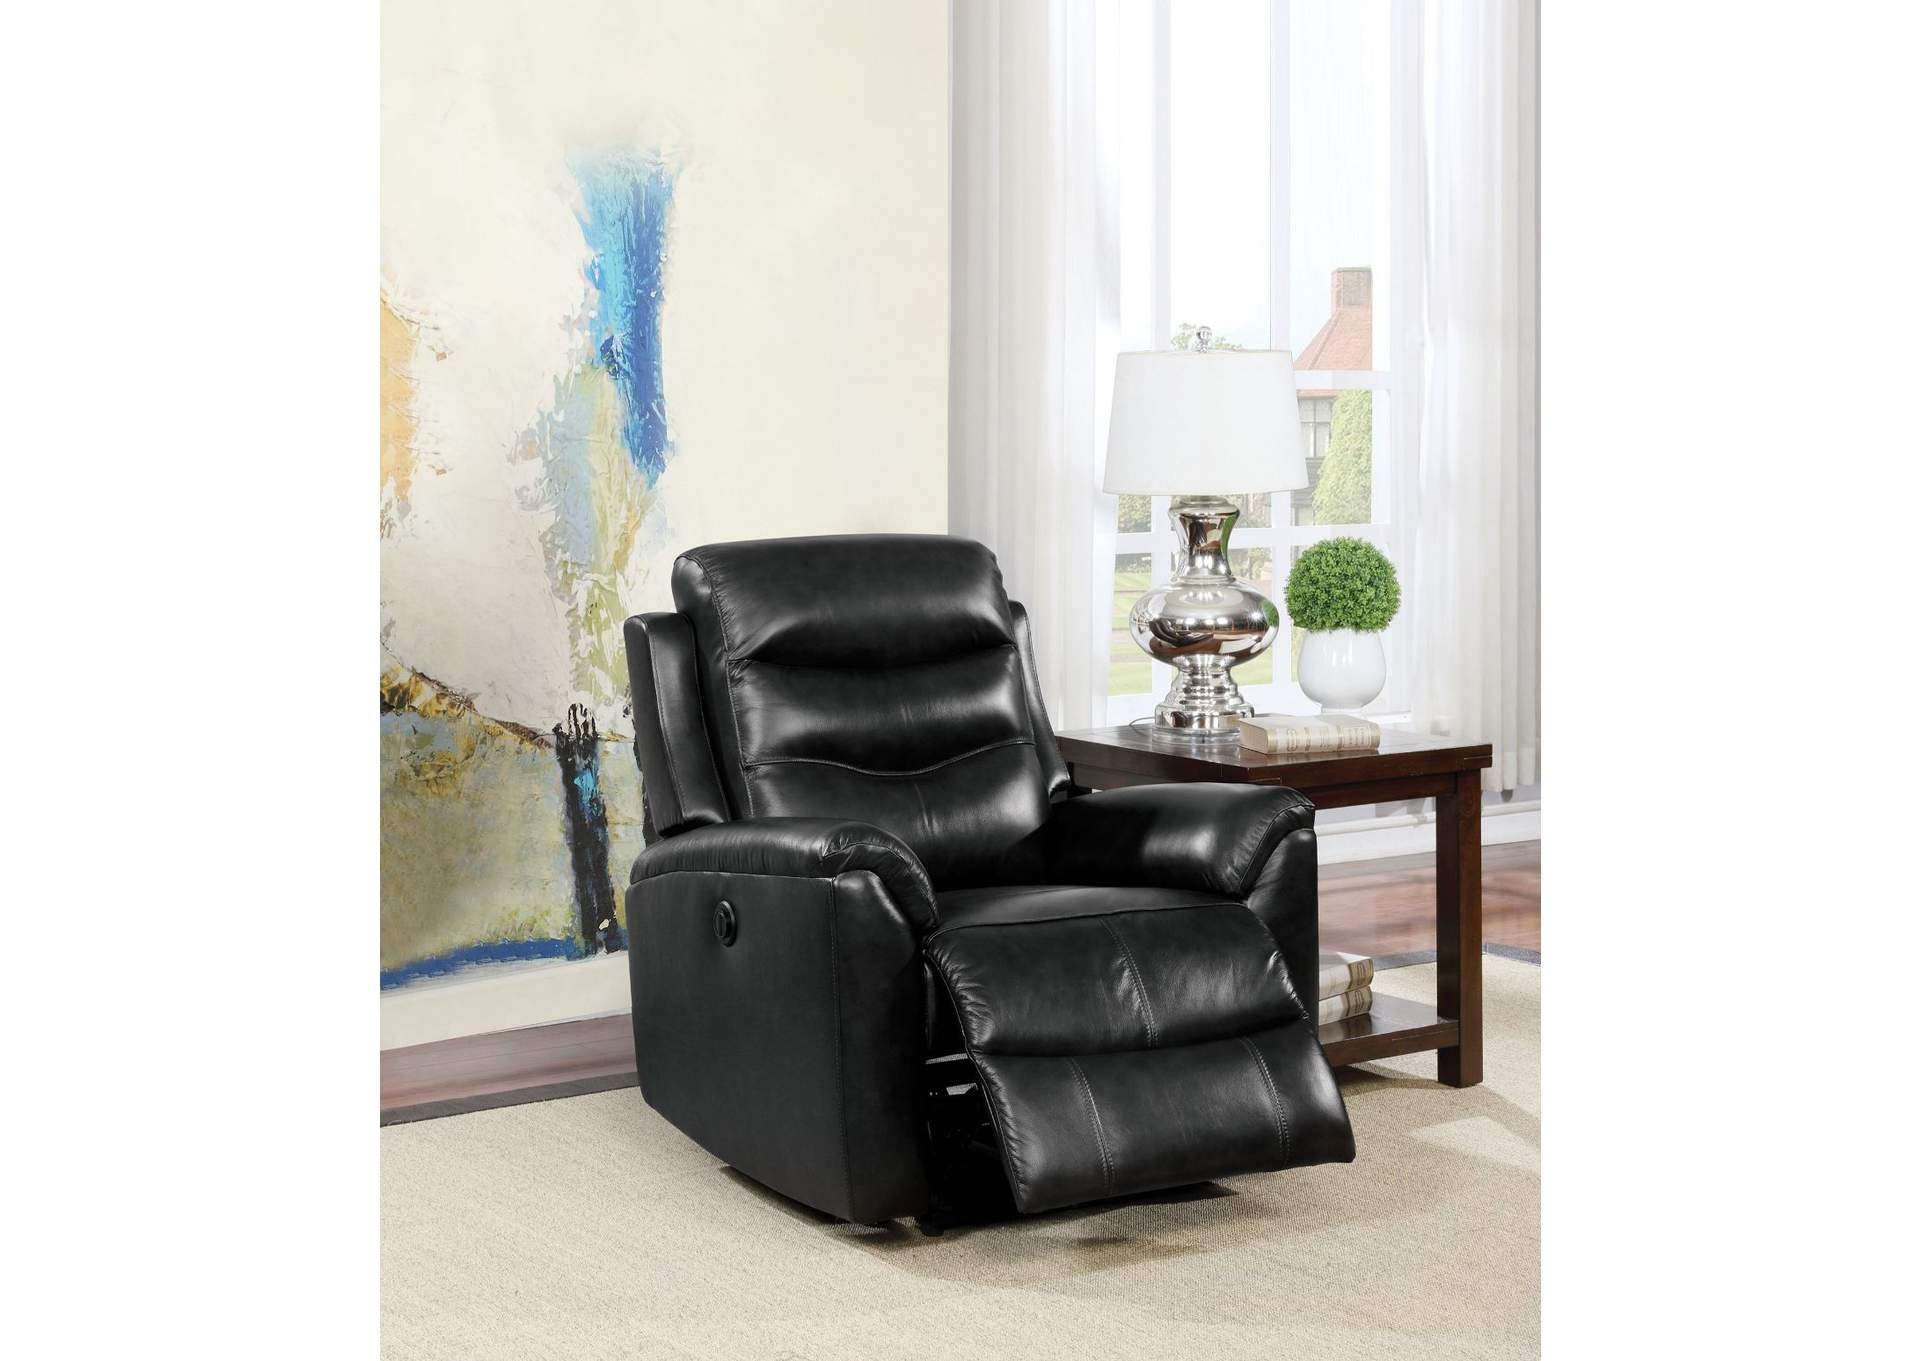 Ava Black Top Grain Leather Match Recliner,Acme